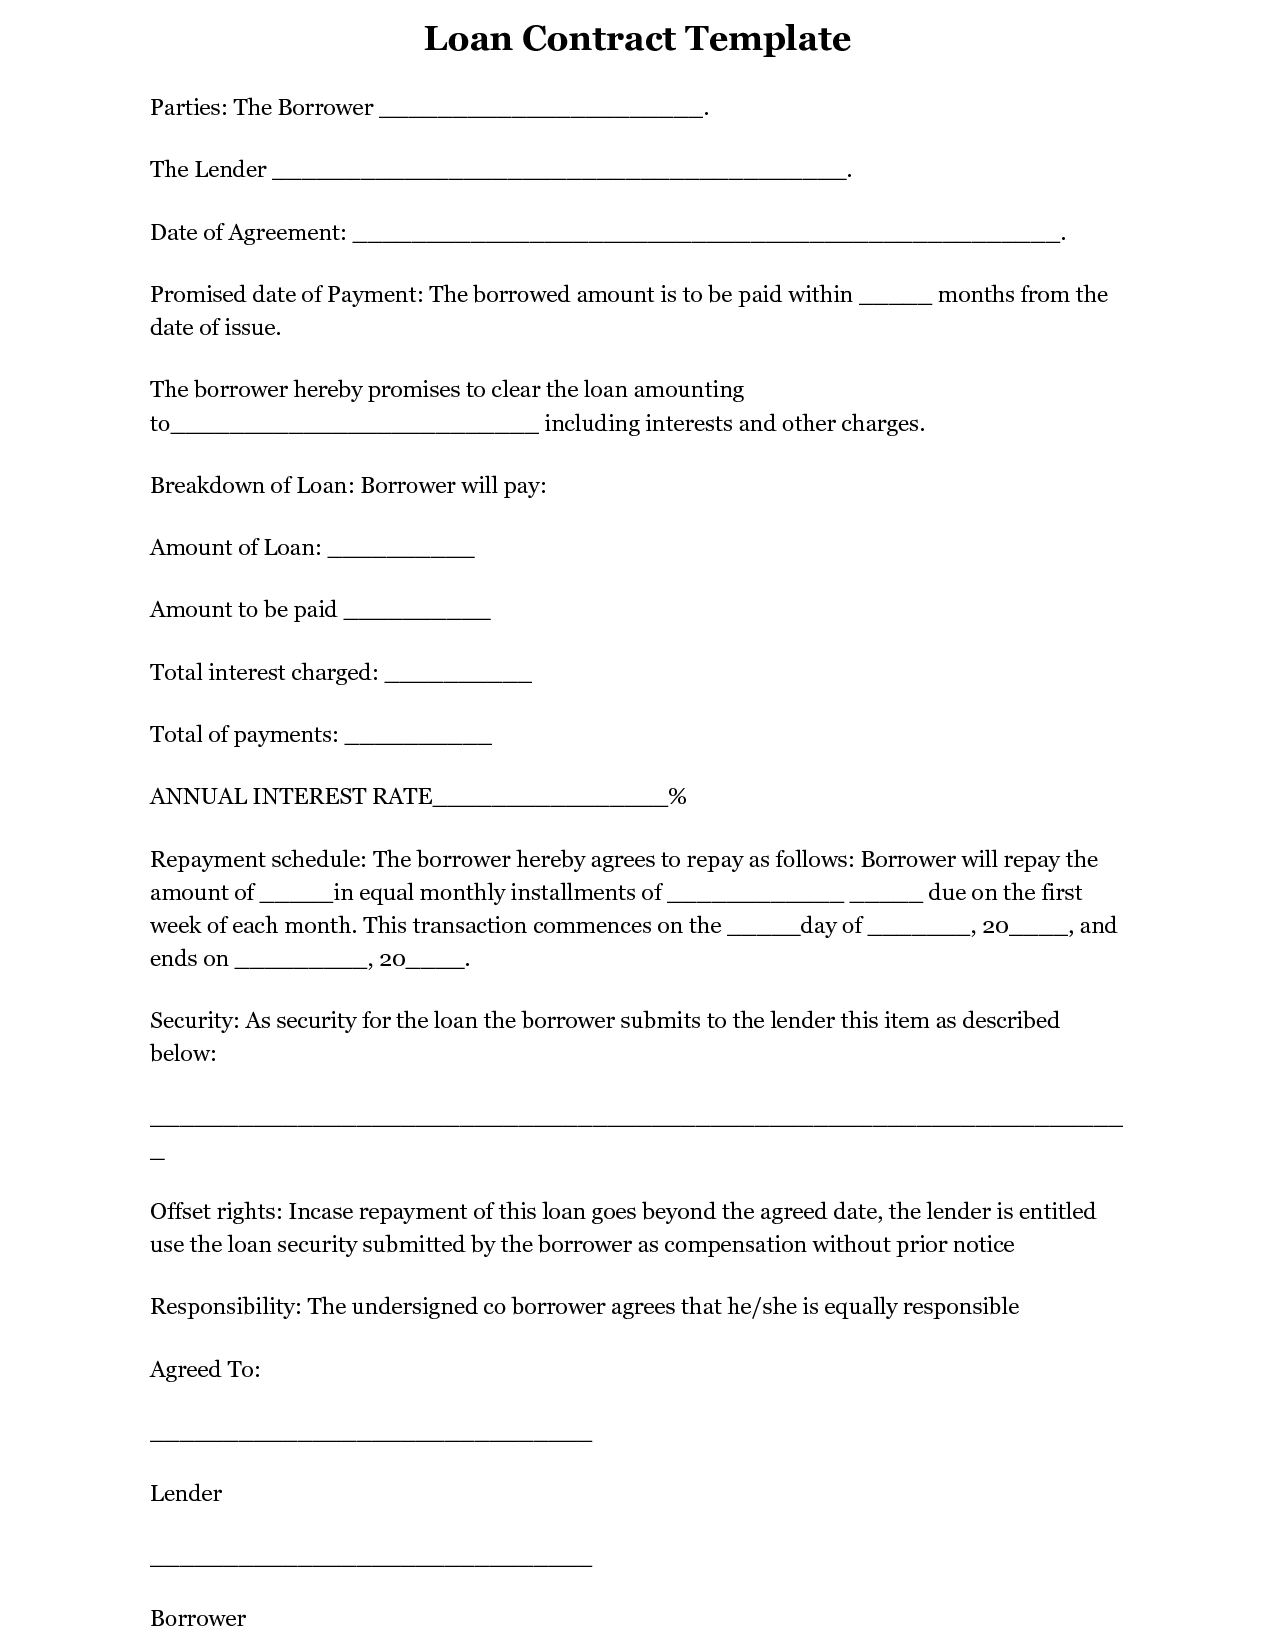 Exceptional Simple Interest Loan Agreement Template | Koco Yhinoha   Simple Loan  Contract Within Personal Loan Document Template